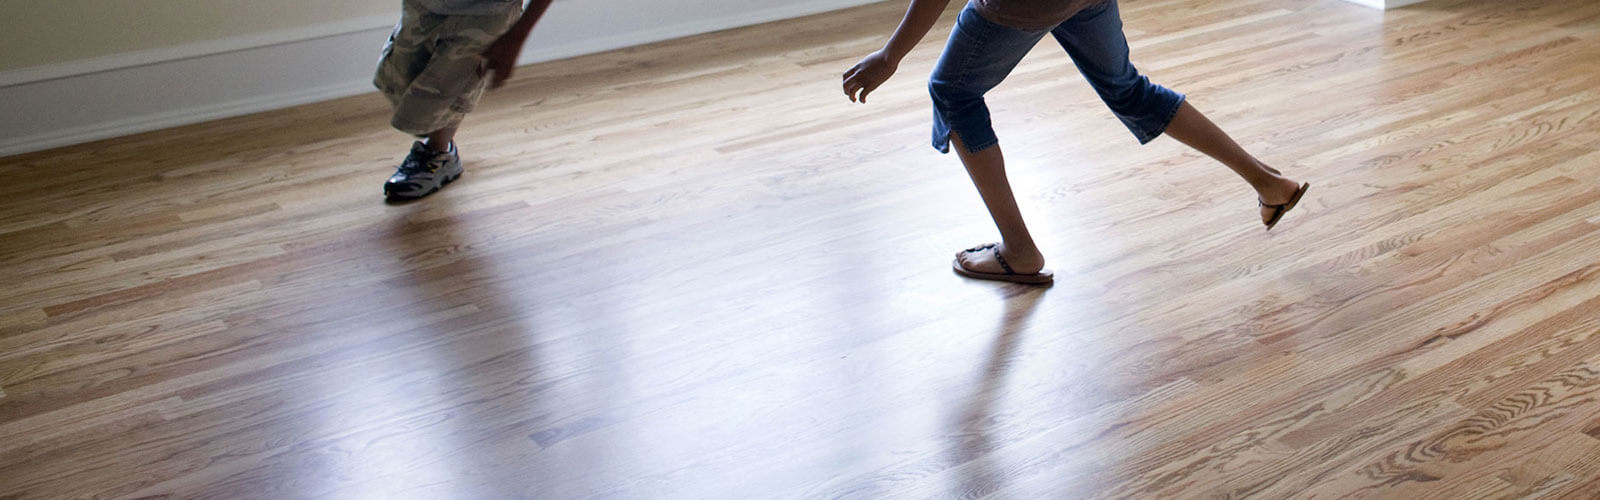 Converse Hardwood Flooring, Vinyl Flooring and Tile Flooring